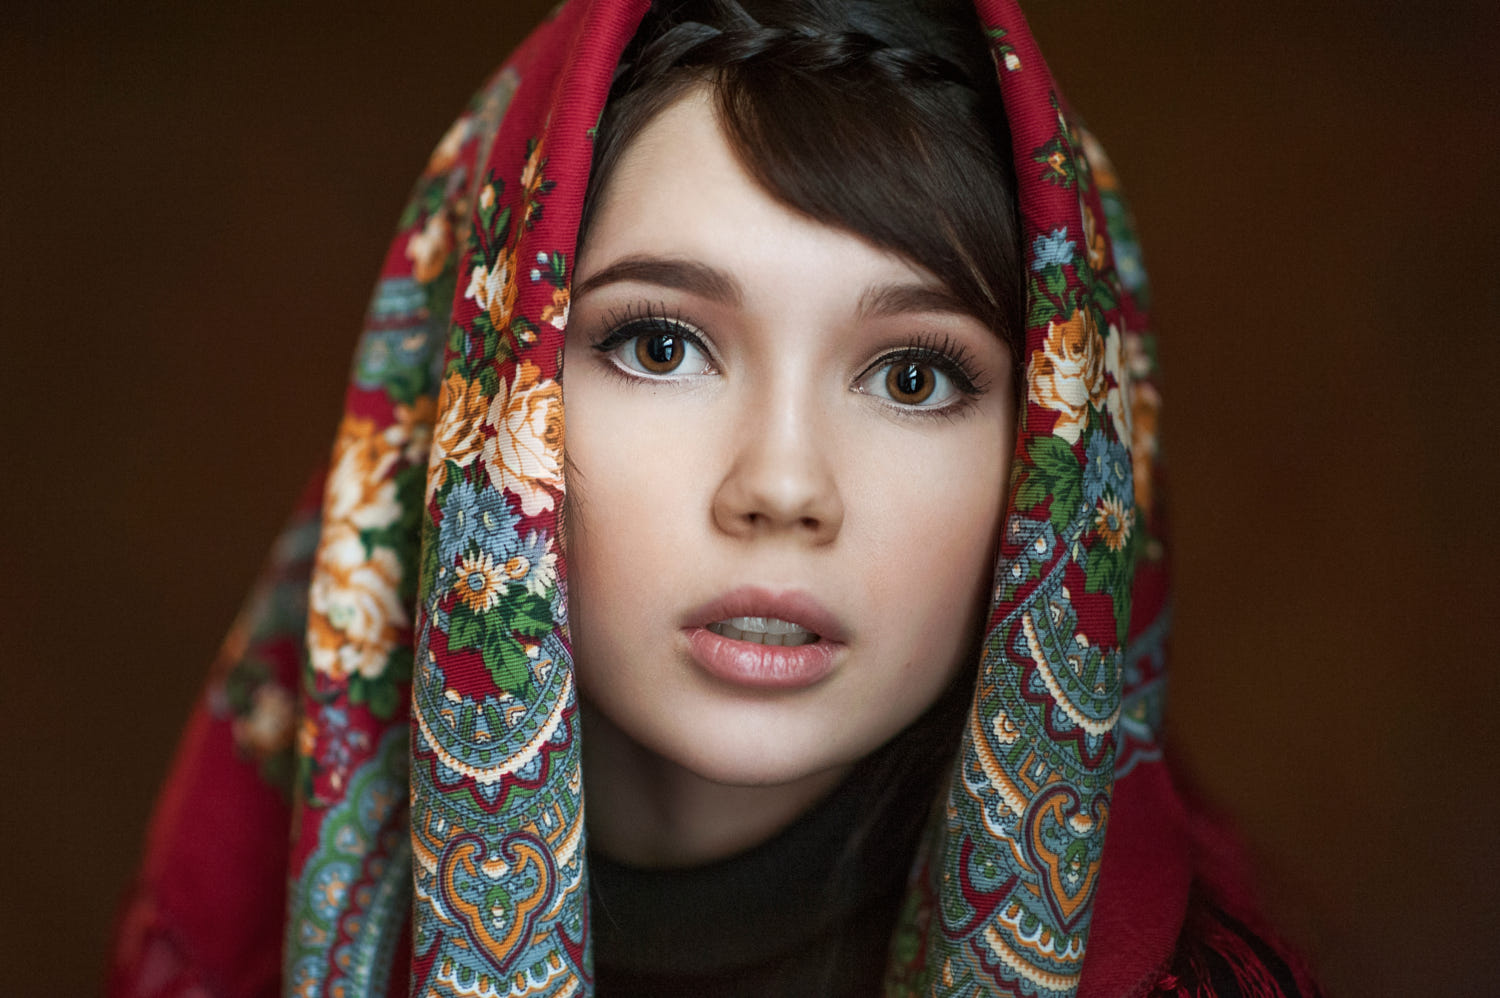 portrait photography girl by maxim maximov